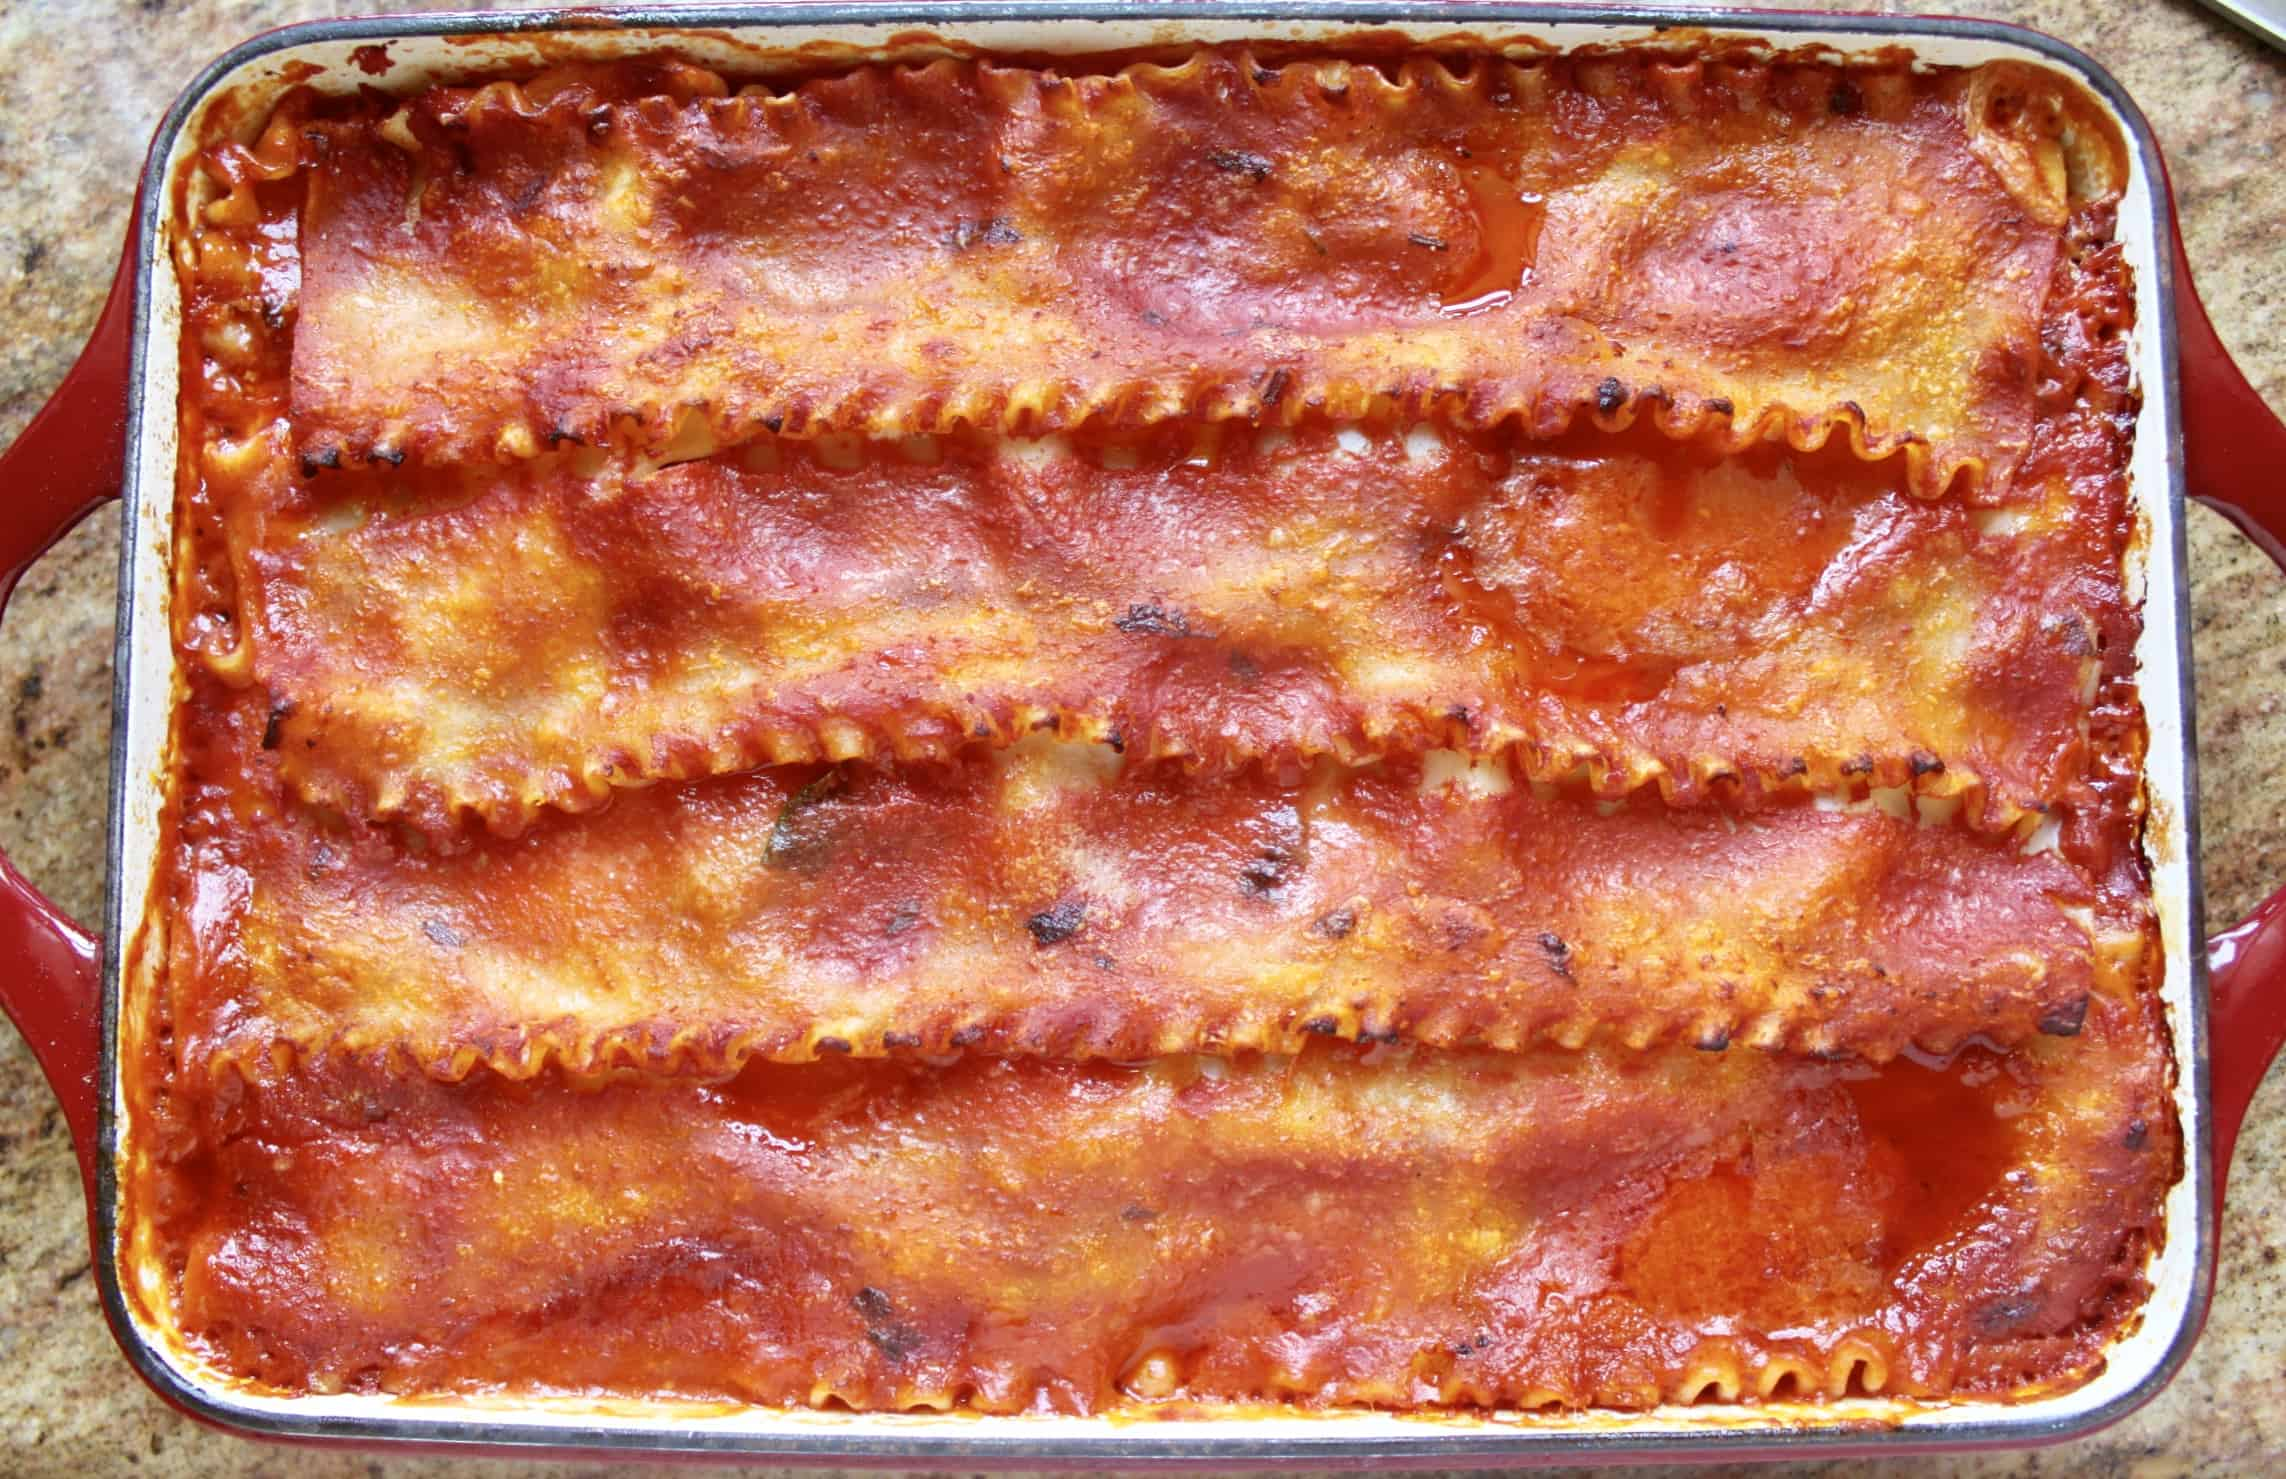 baked lasagna out of the oven